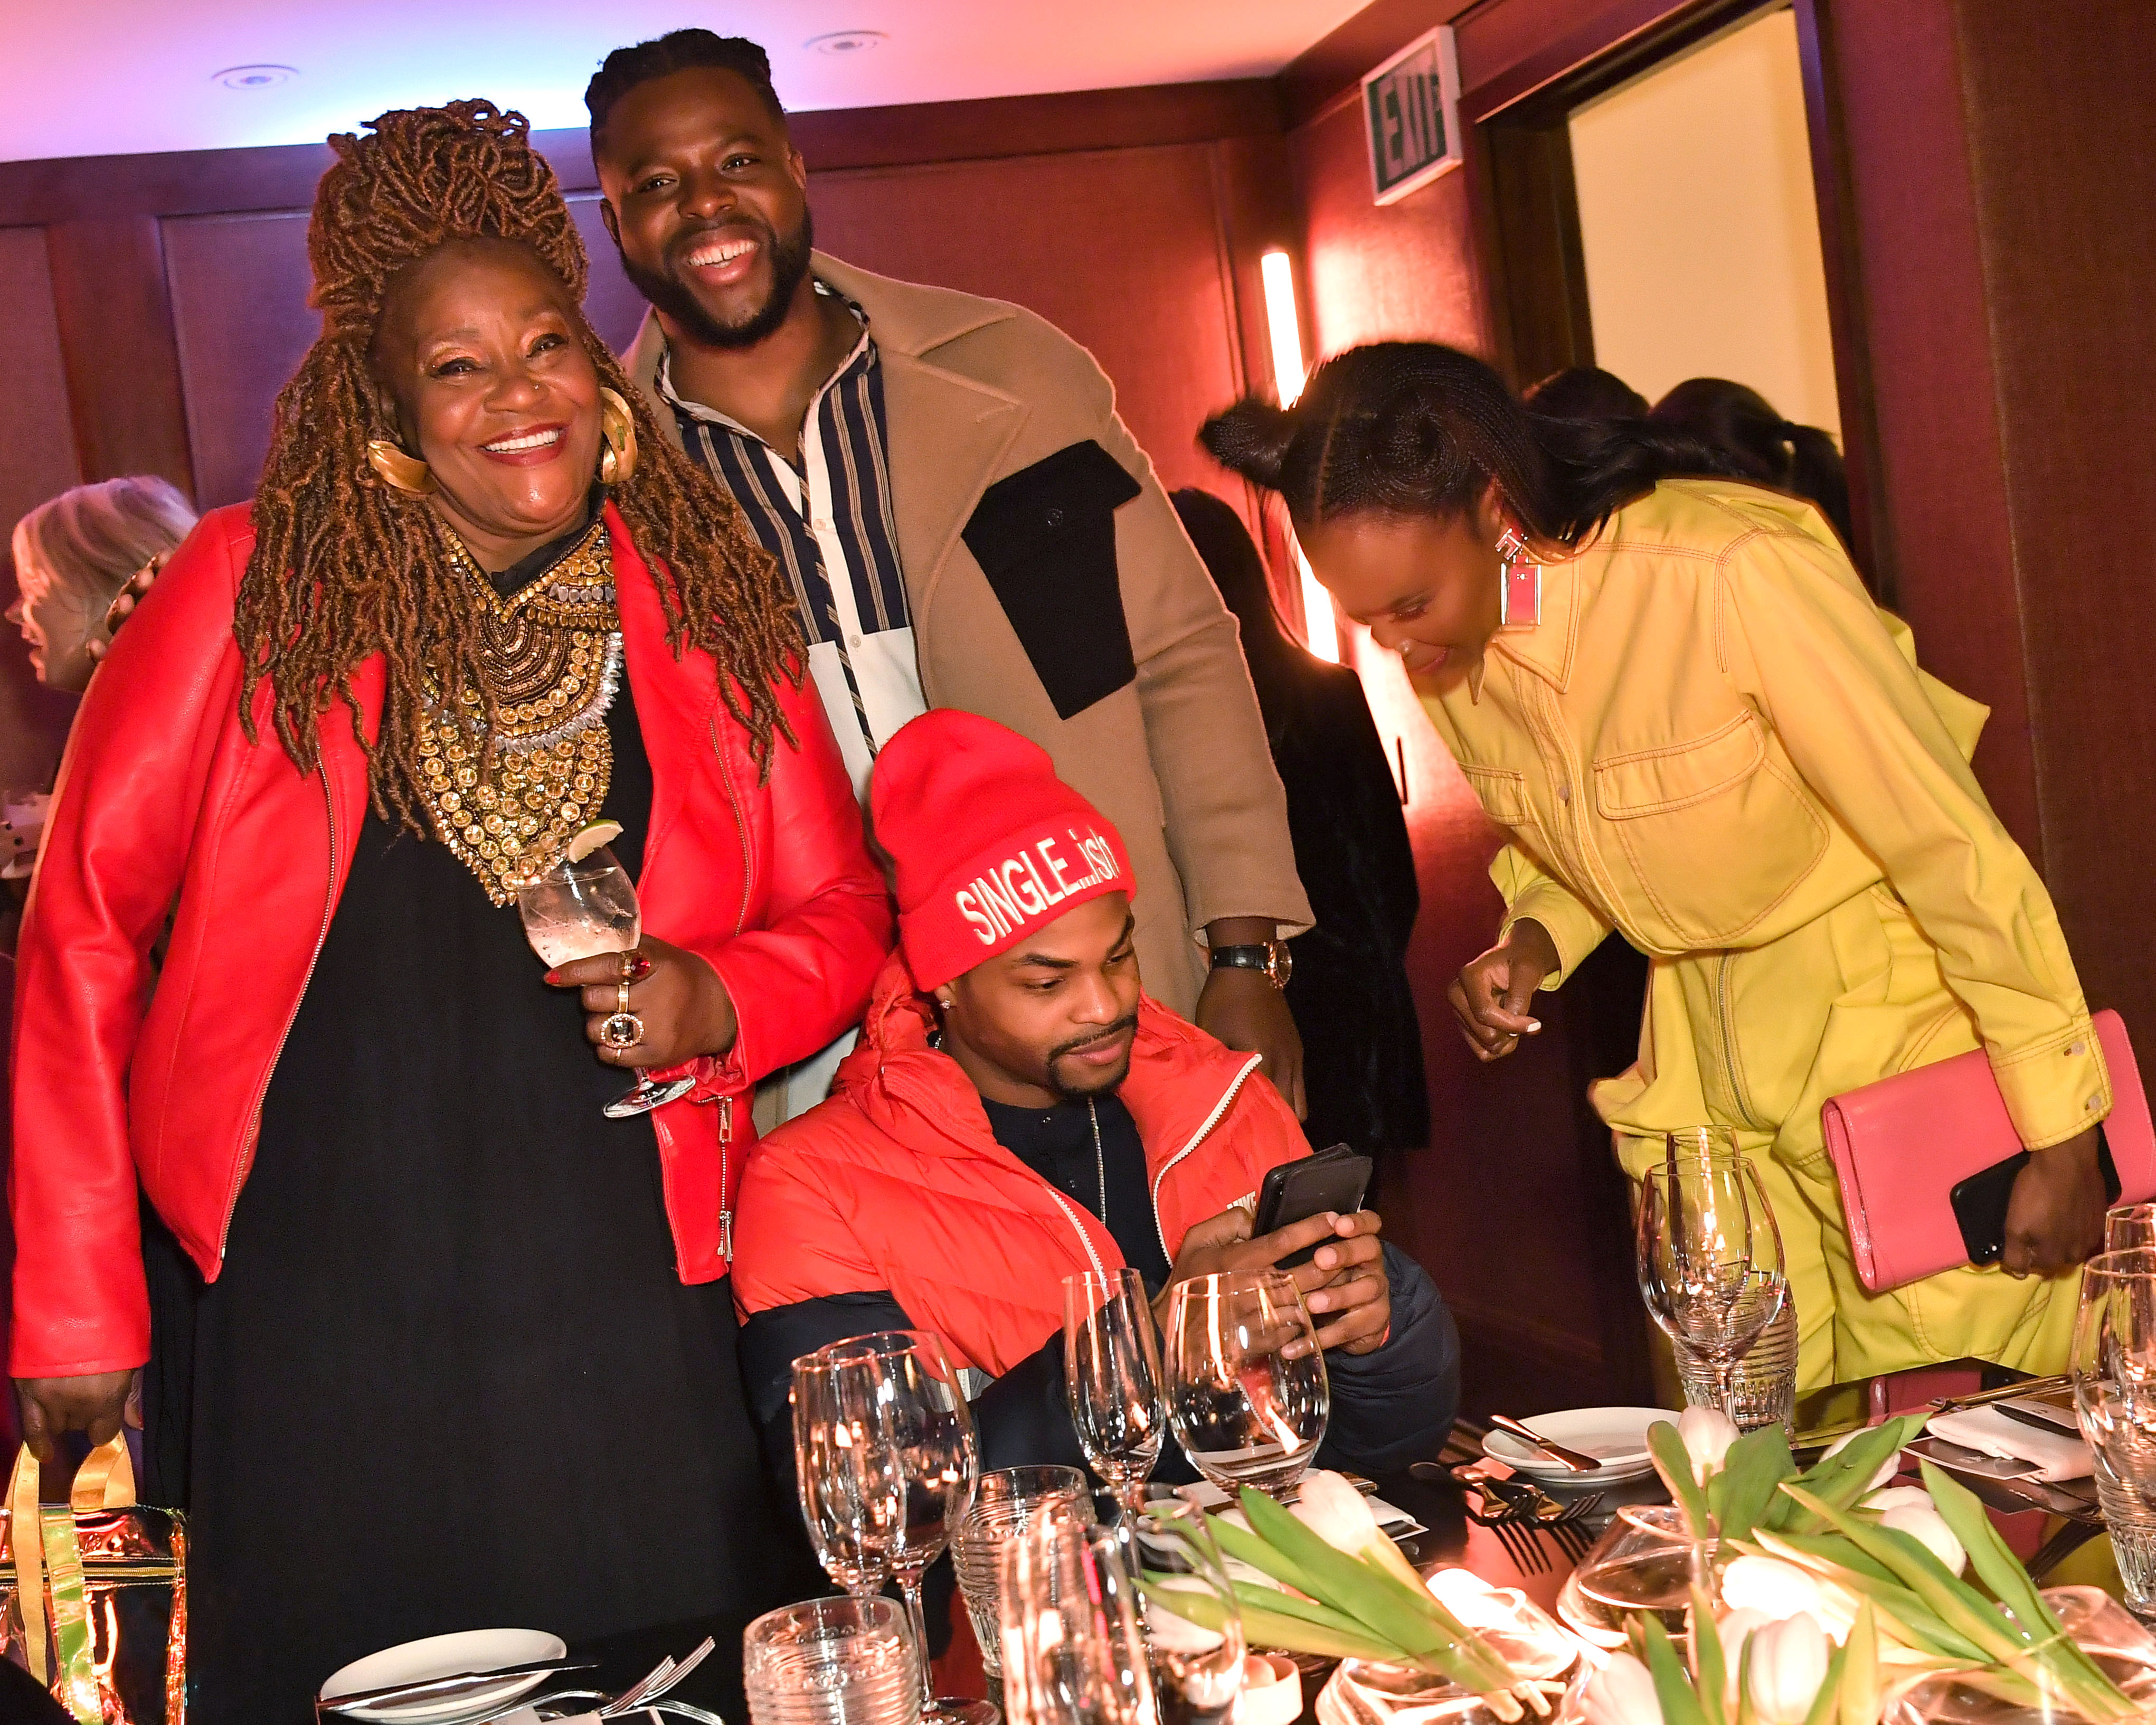 Cora Pantin, Winston Duke, King Bach and Sydelle NoelMCM x GQ celebrate Winston Duke at The Restaurant at Montage Beverly Hills, Los Angeles, USA - 19 Dec 2018